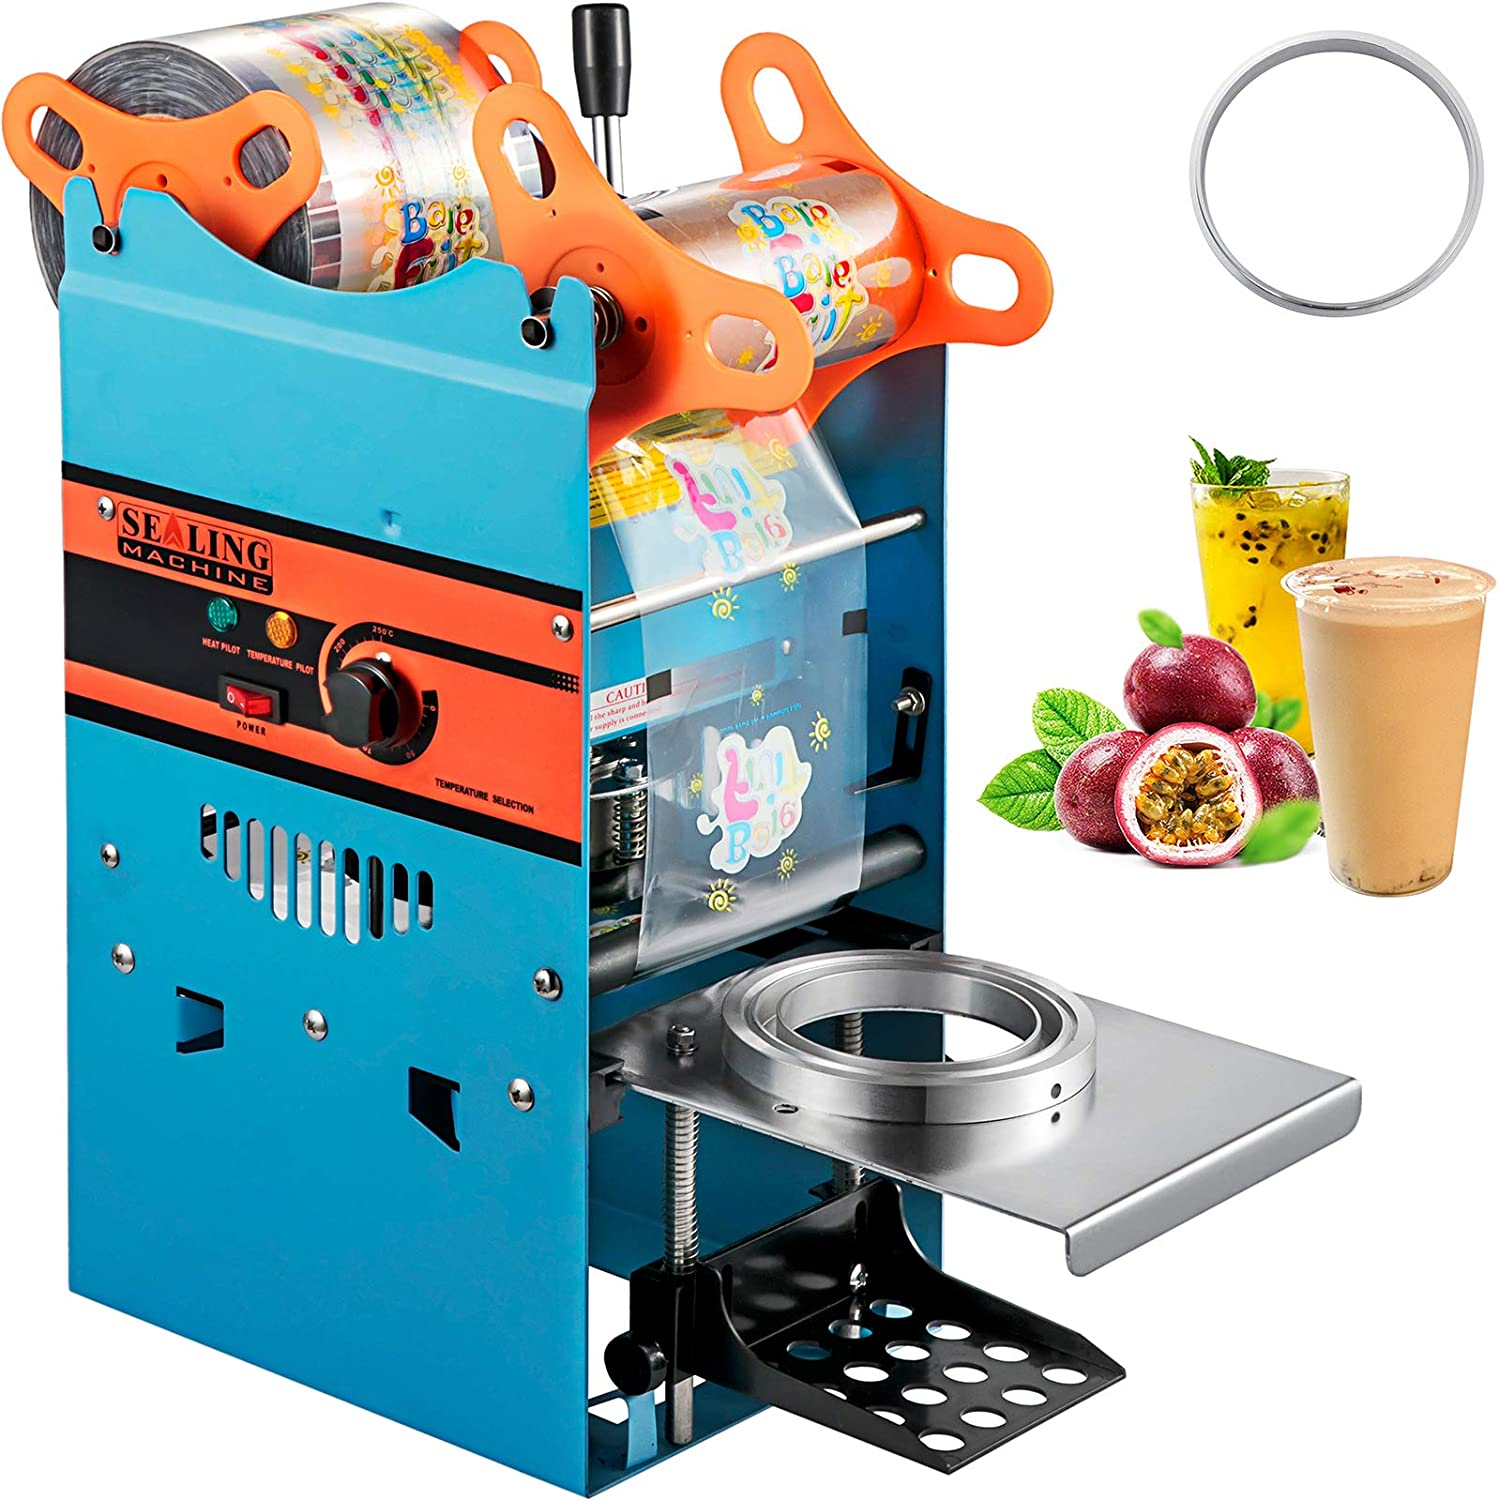 VEVOR Manual Tea Cup Sealer Directly managed store h Machine 300-500 T Boba Sale special price